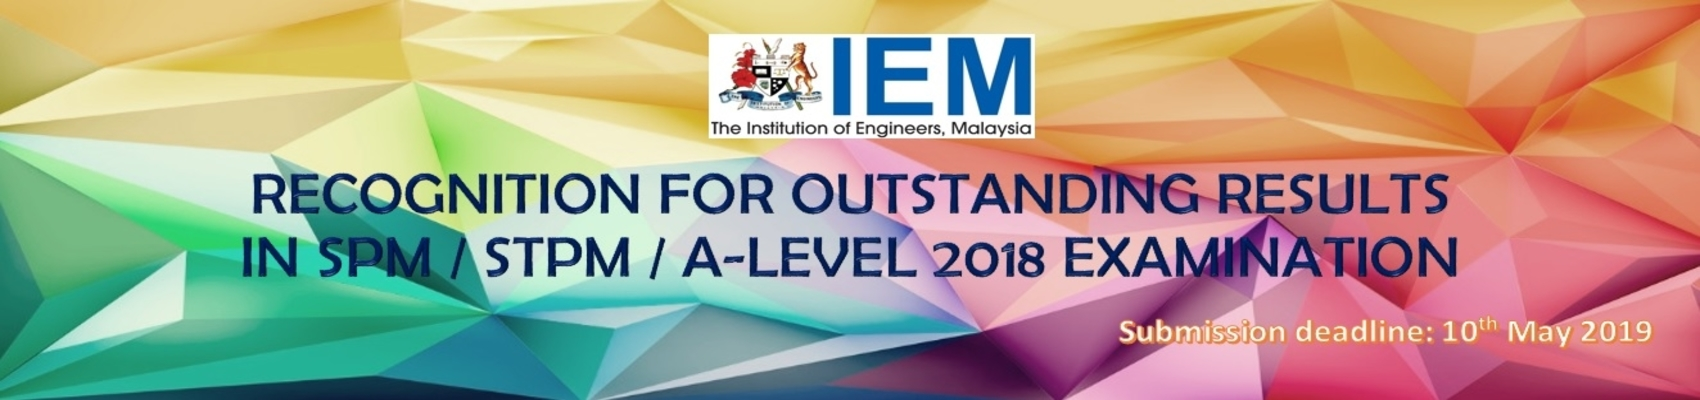 Recognition for Outstanding Results in SPM / STPM / A-LEVEL 2018 Examination